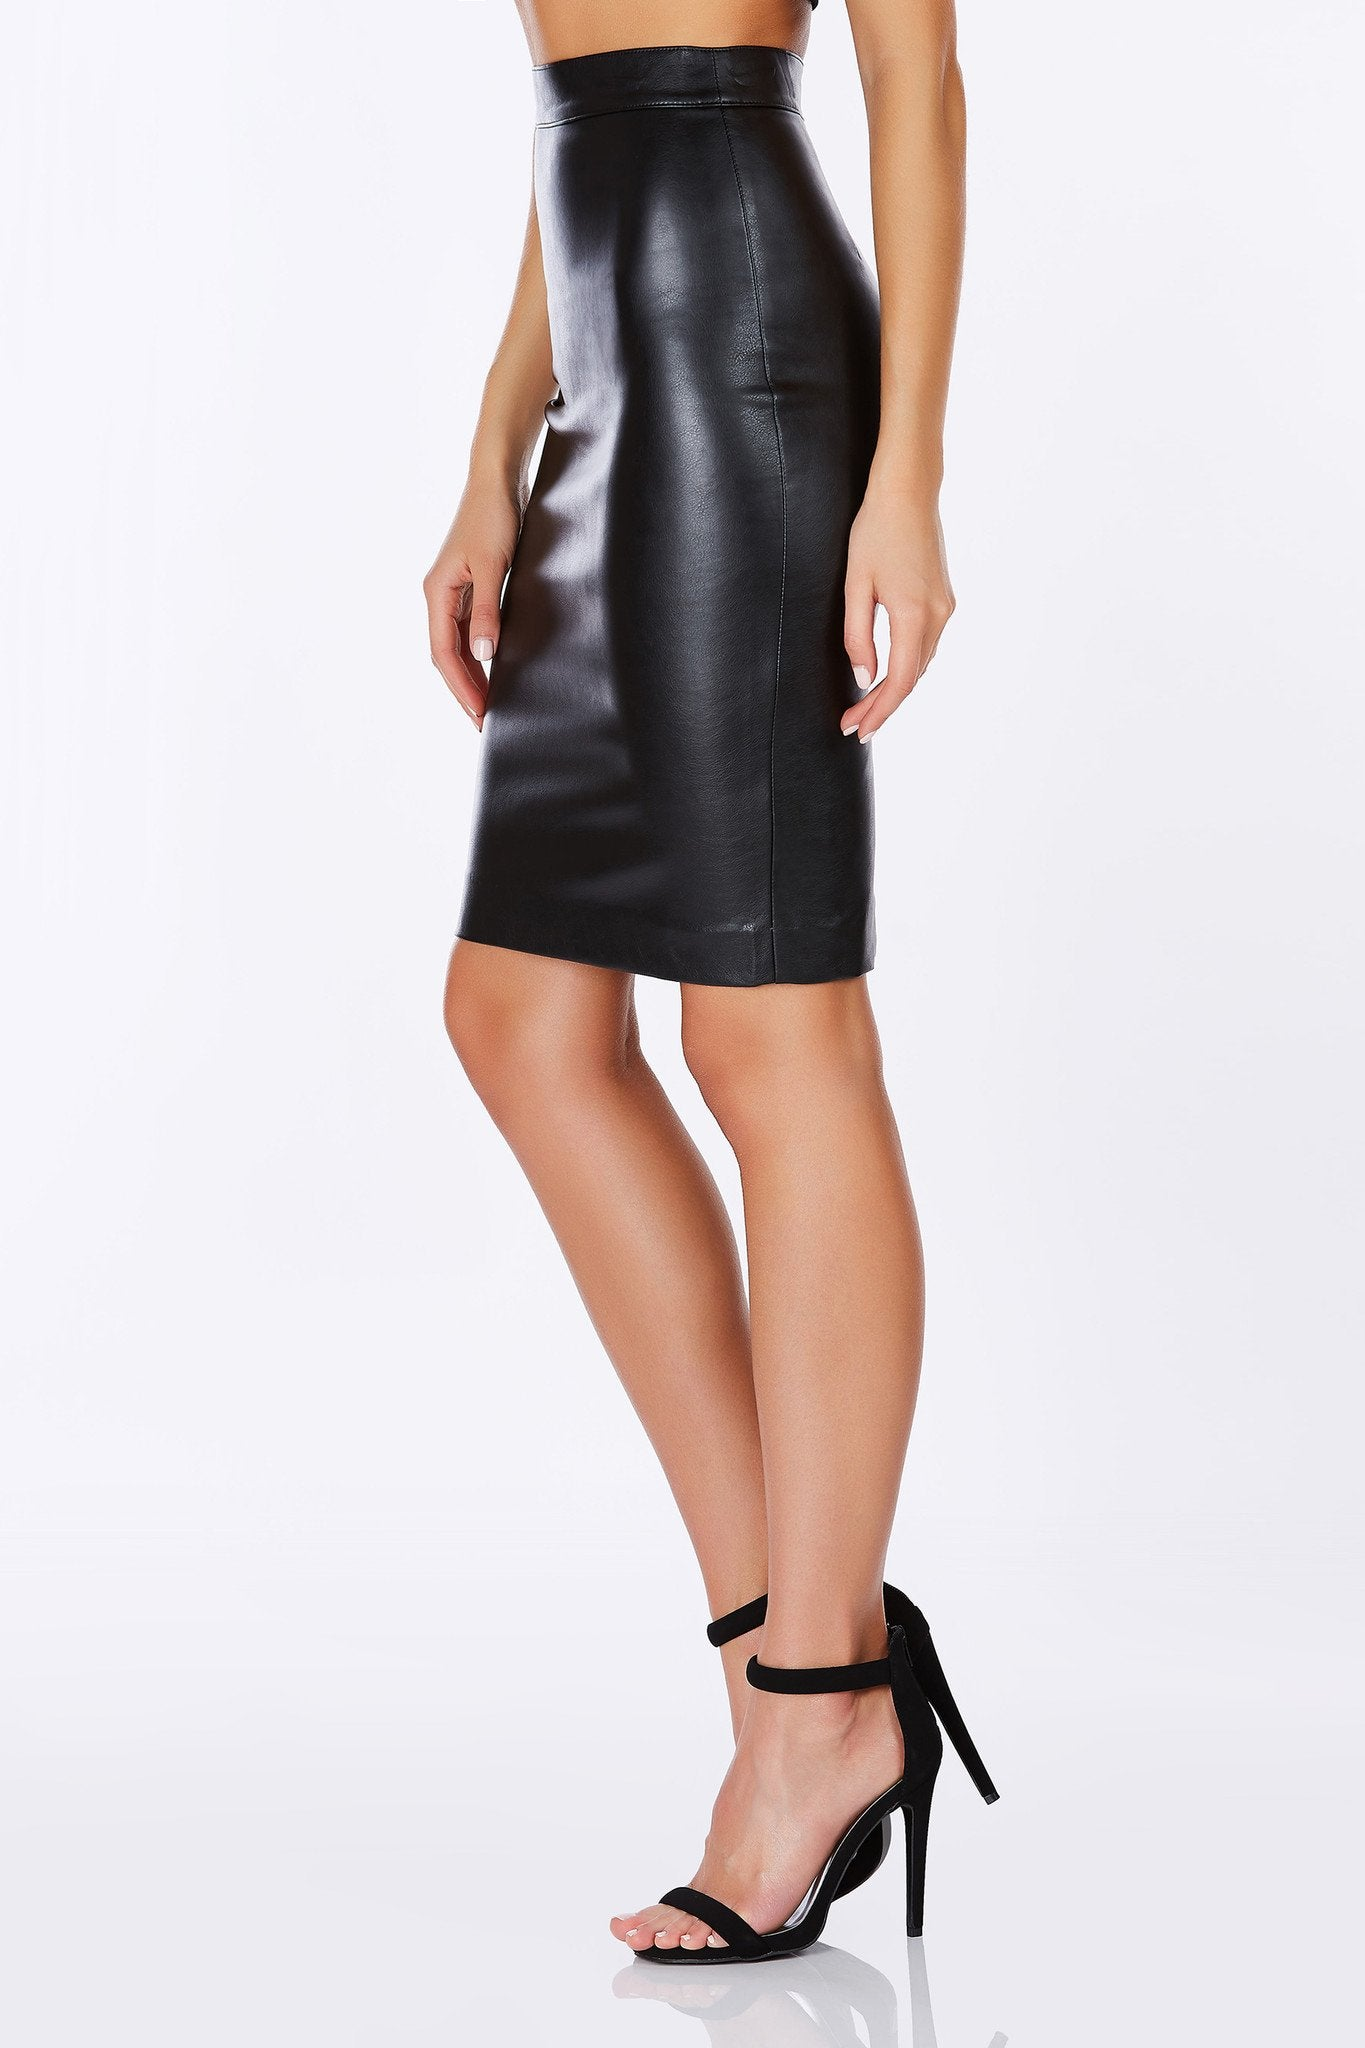 A super sexy faux leather midi skirt. This skirt is high waisted and has a single zipper on the back for closure. Pair this skirt with the matching Trouble Maker Crop Top. Looks hot with a gold chain and red lips!